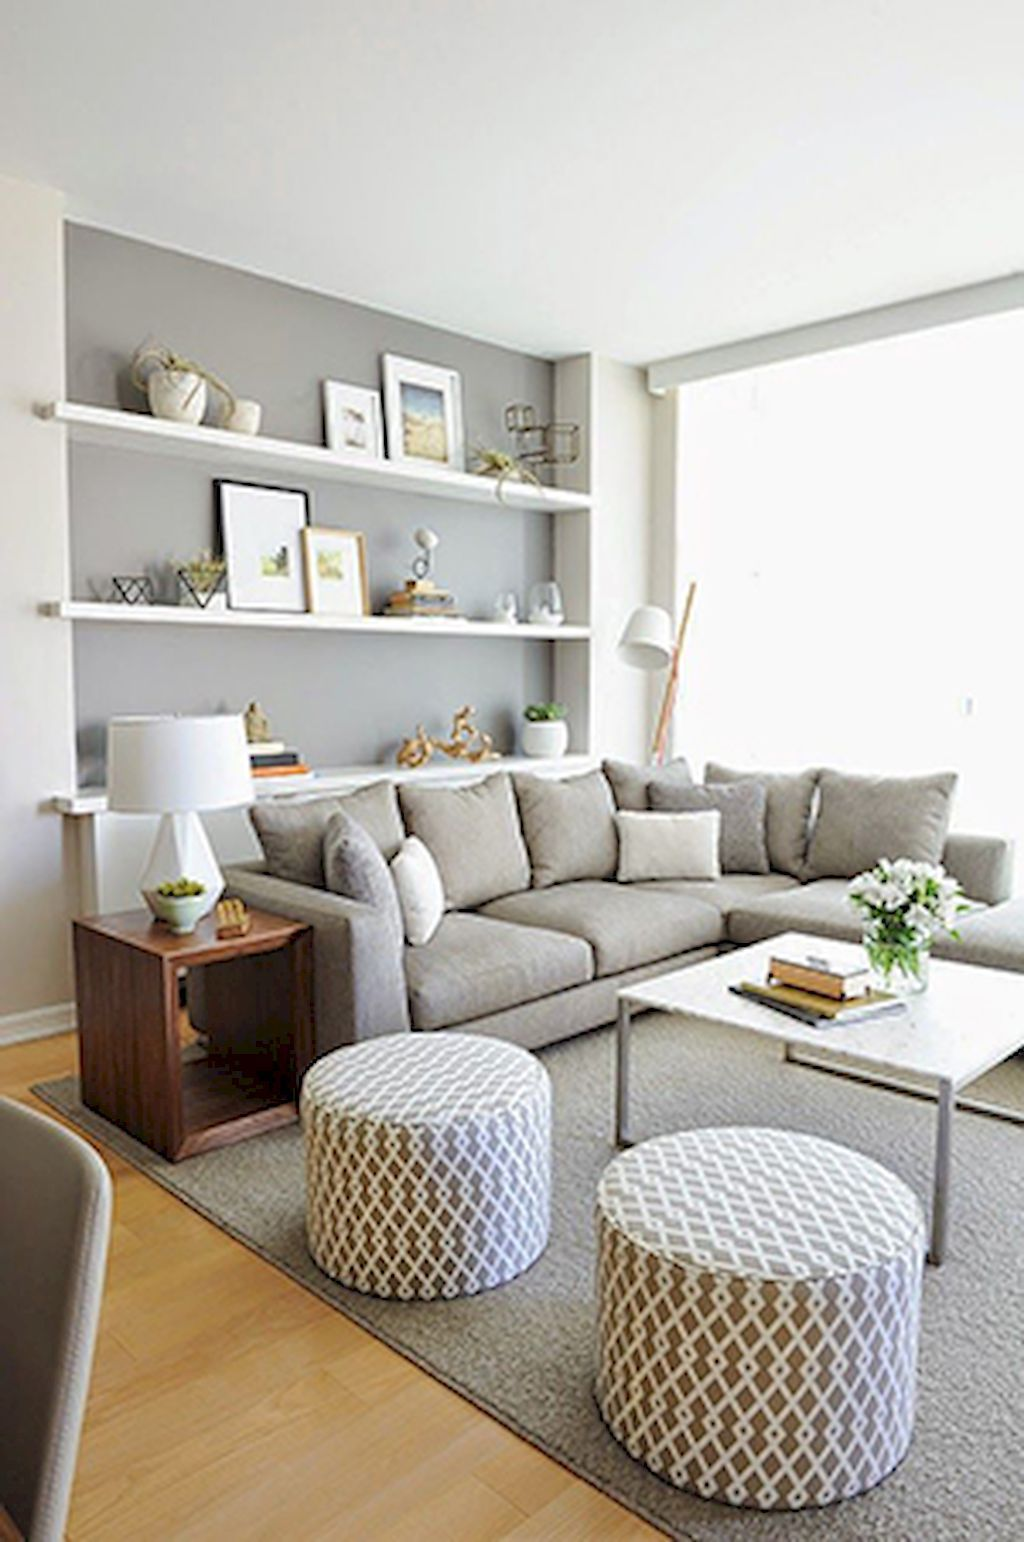 Adorable 66 Stunning Small Living Room Decor Ideas On A Budget  Https://livinking.com/2017/06/11/66 Stunning Small Living Room Decor Ideas  Budget/